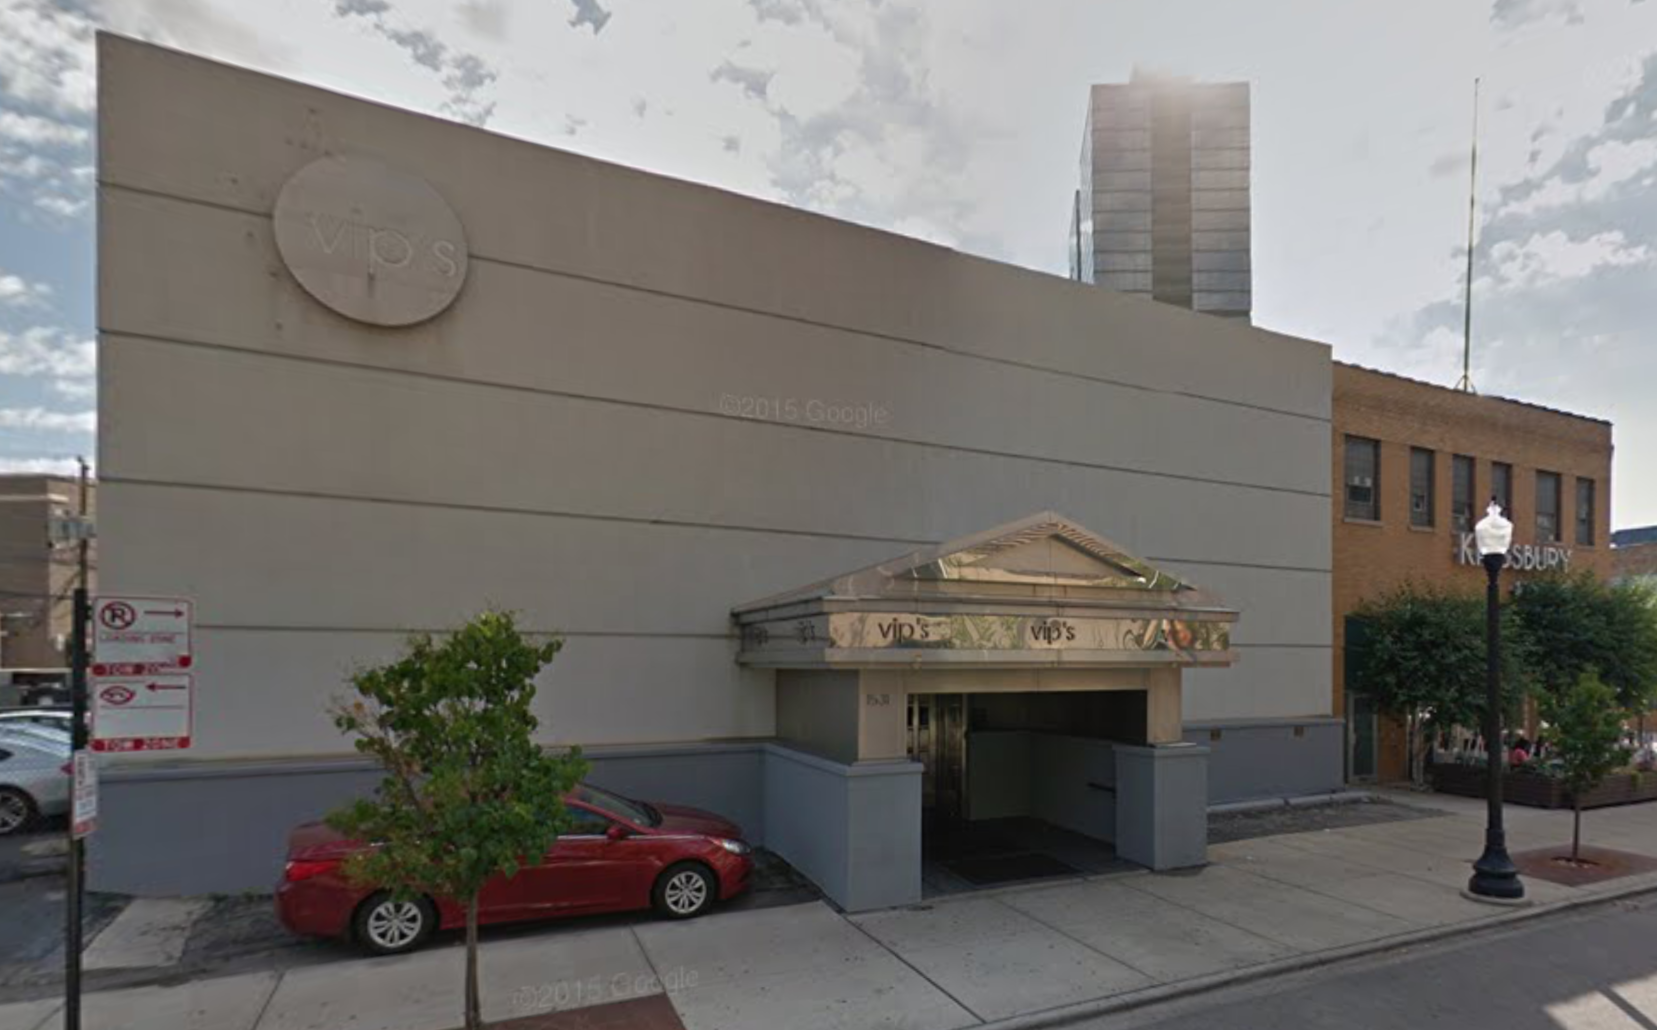 Chicago's topless bar ban that clubs like VIP'S have challenged is back in the news.